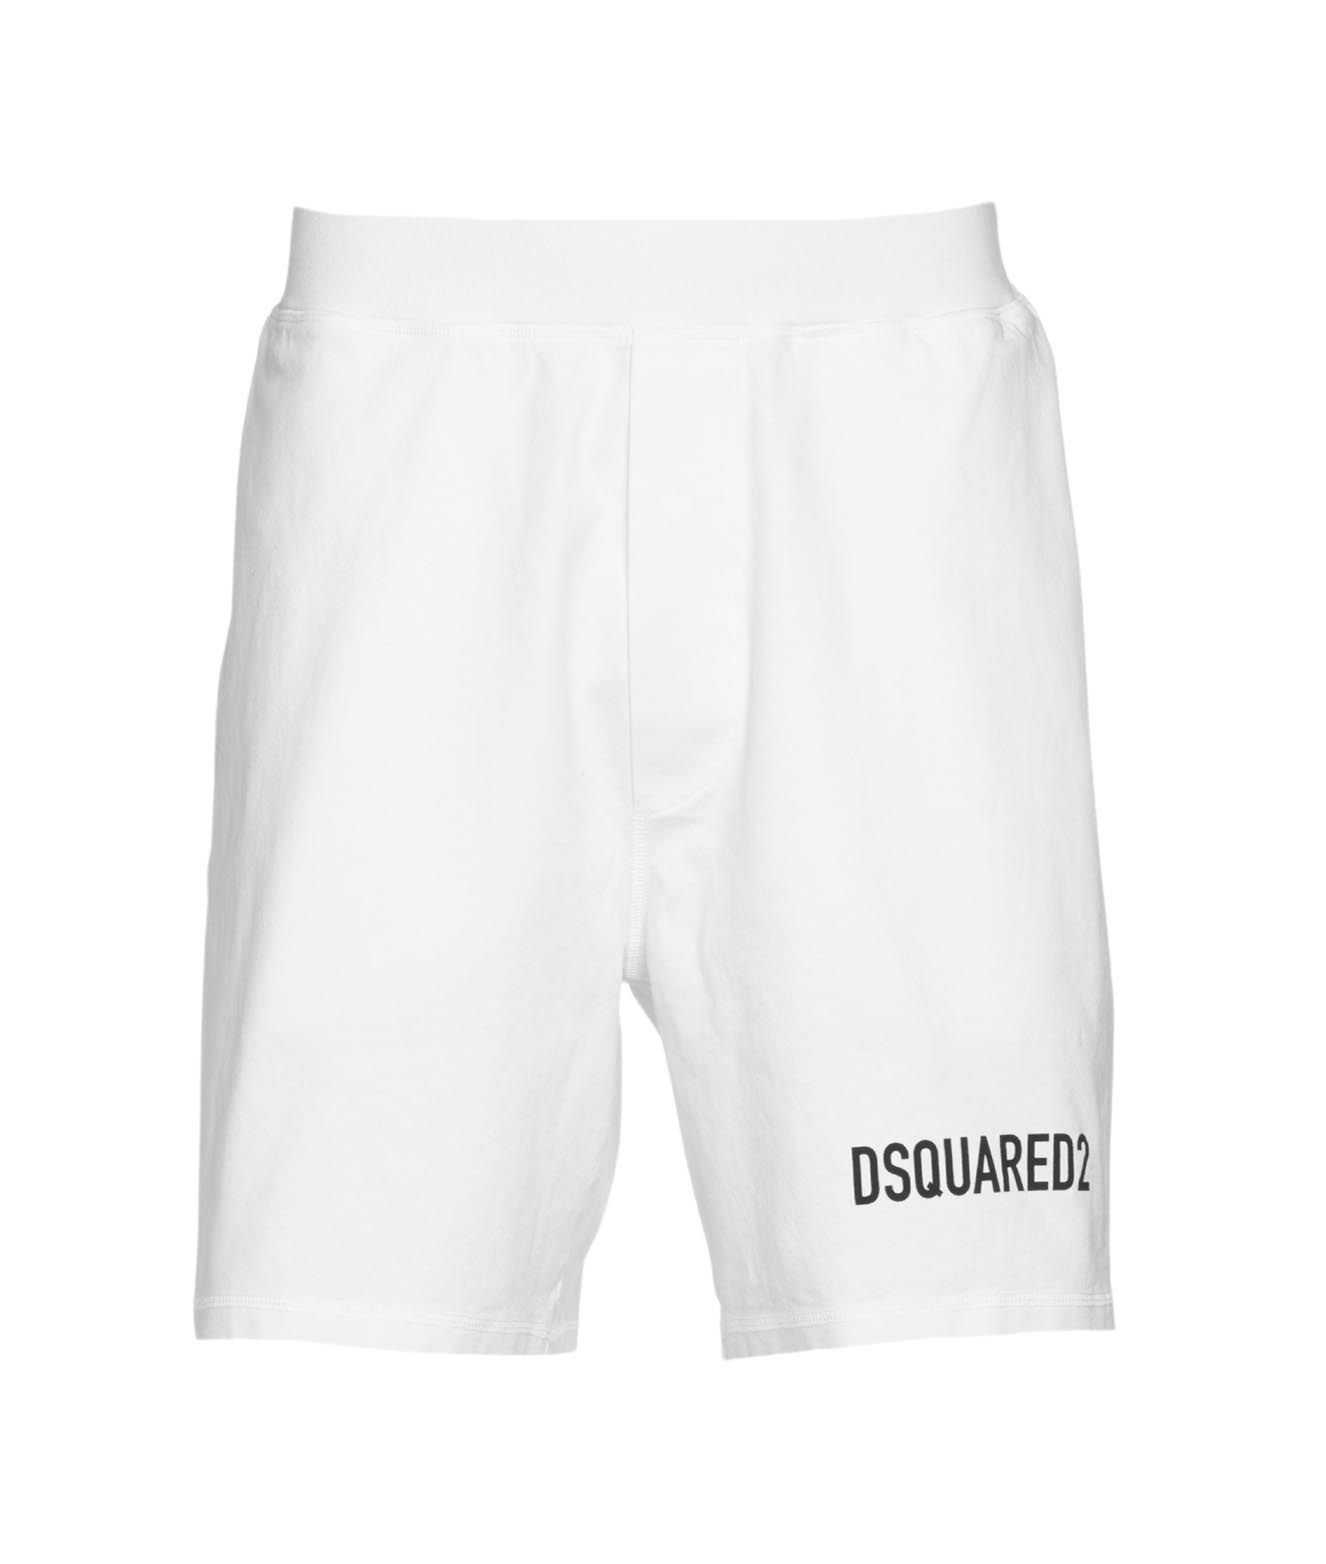 Dsquared2 Shorts DSQUARED2 MEN'S WHITE OTHER MATERIALS SHORTS